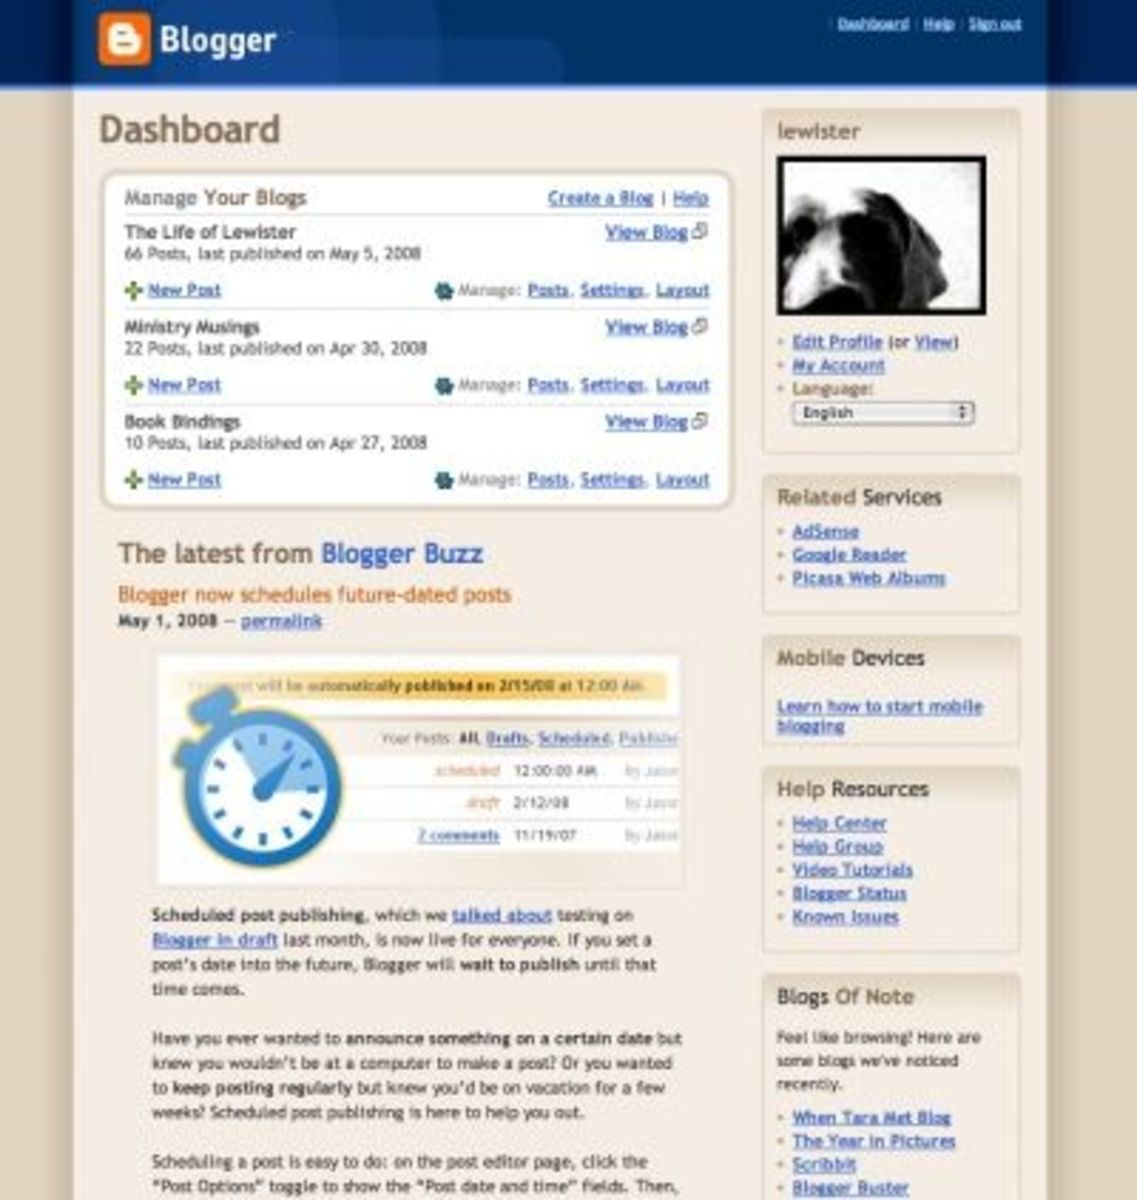 Your dashboard helps you manage multiple blogs and your account.